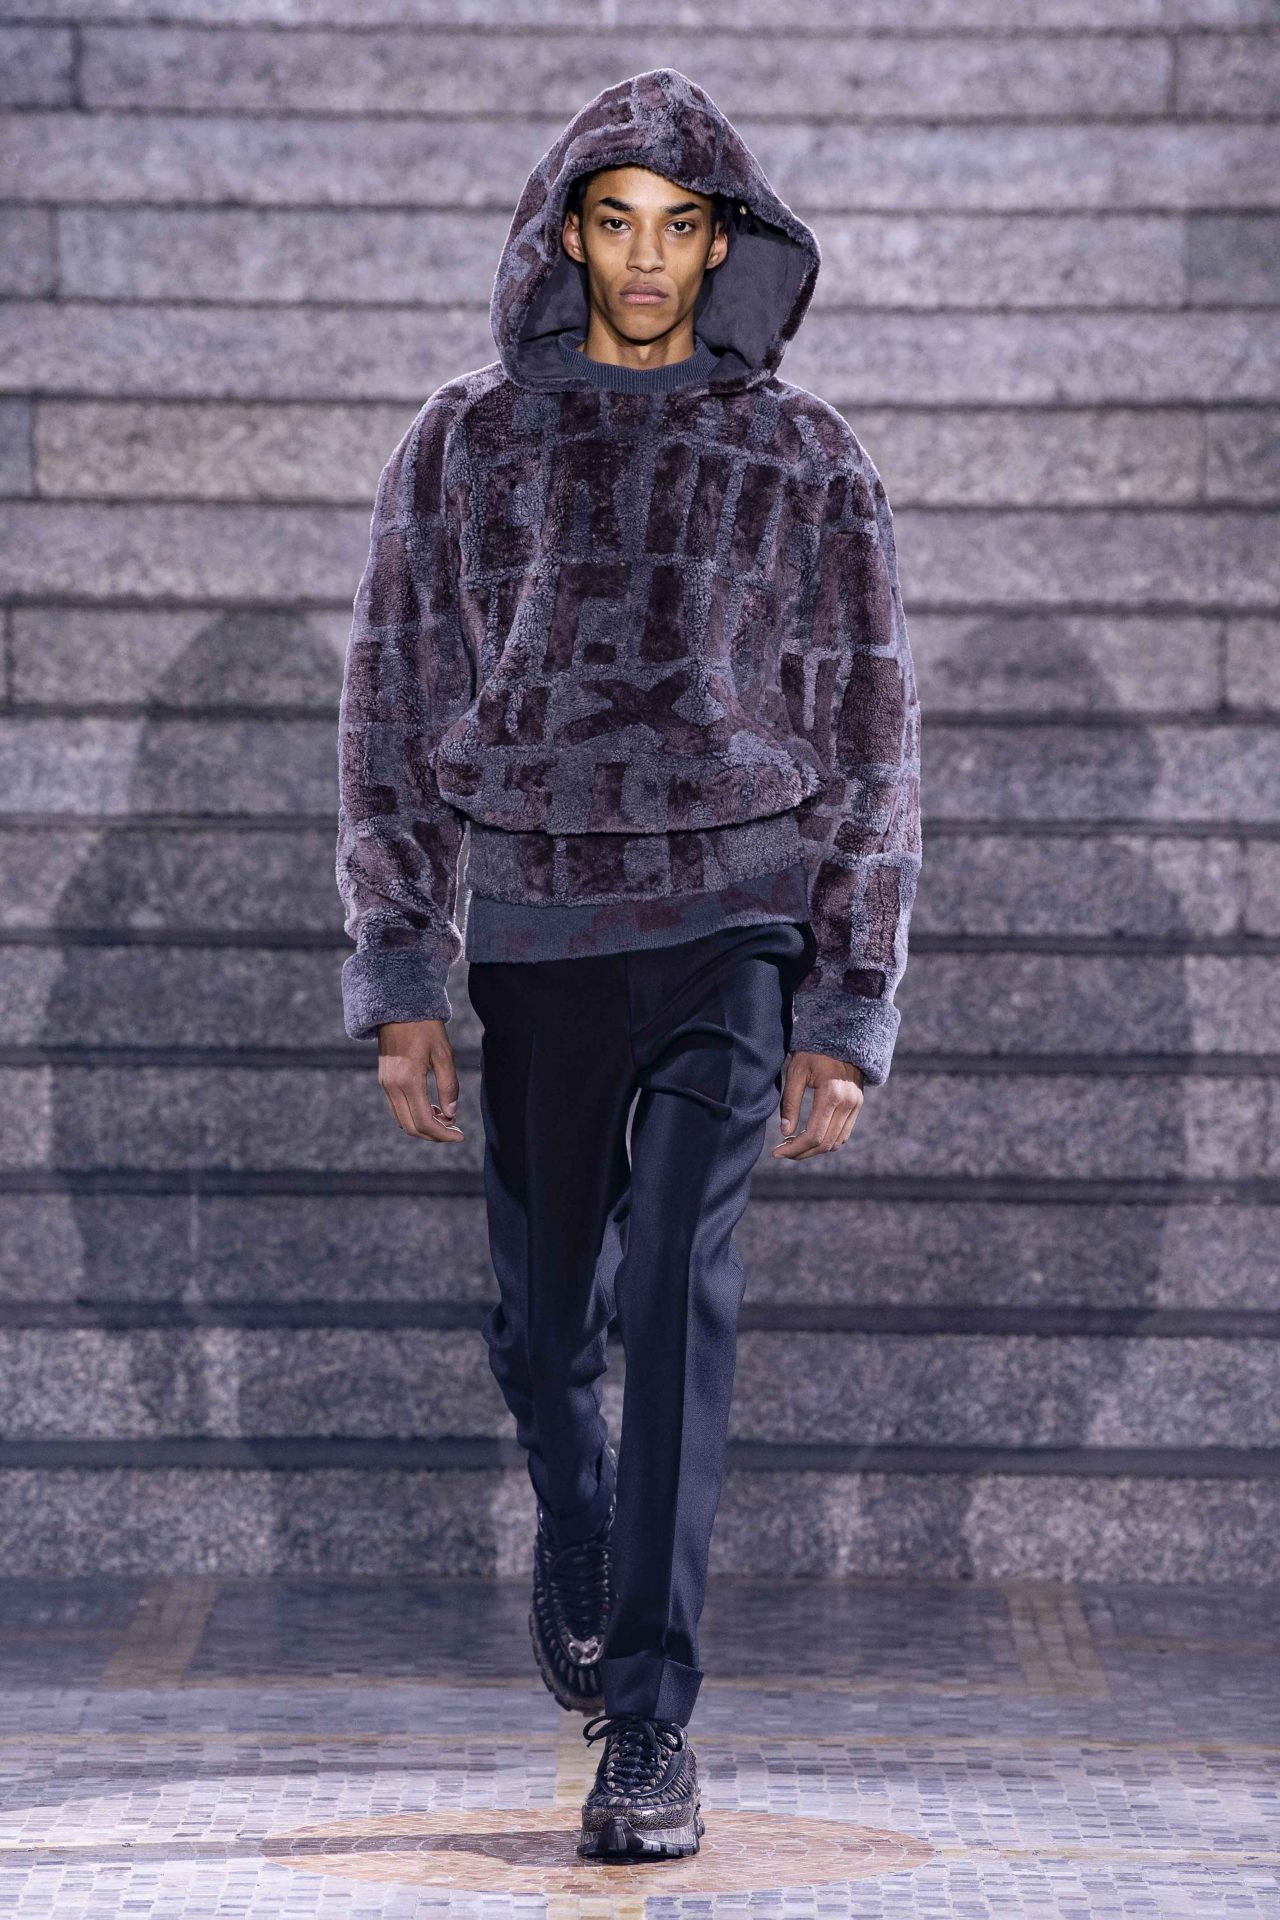 Fall/Winter 19 Kollektion von Ermenegildo Zegna